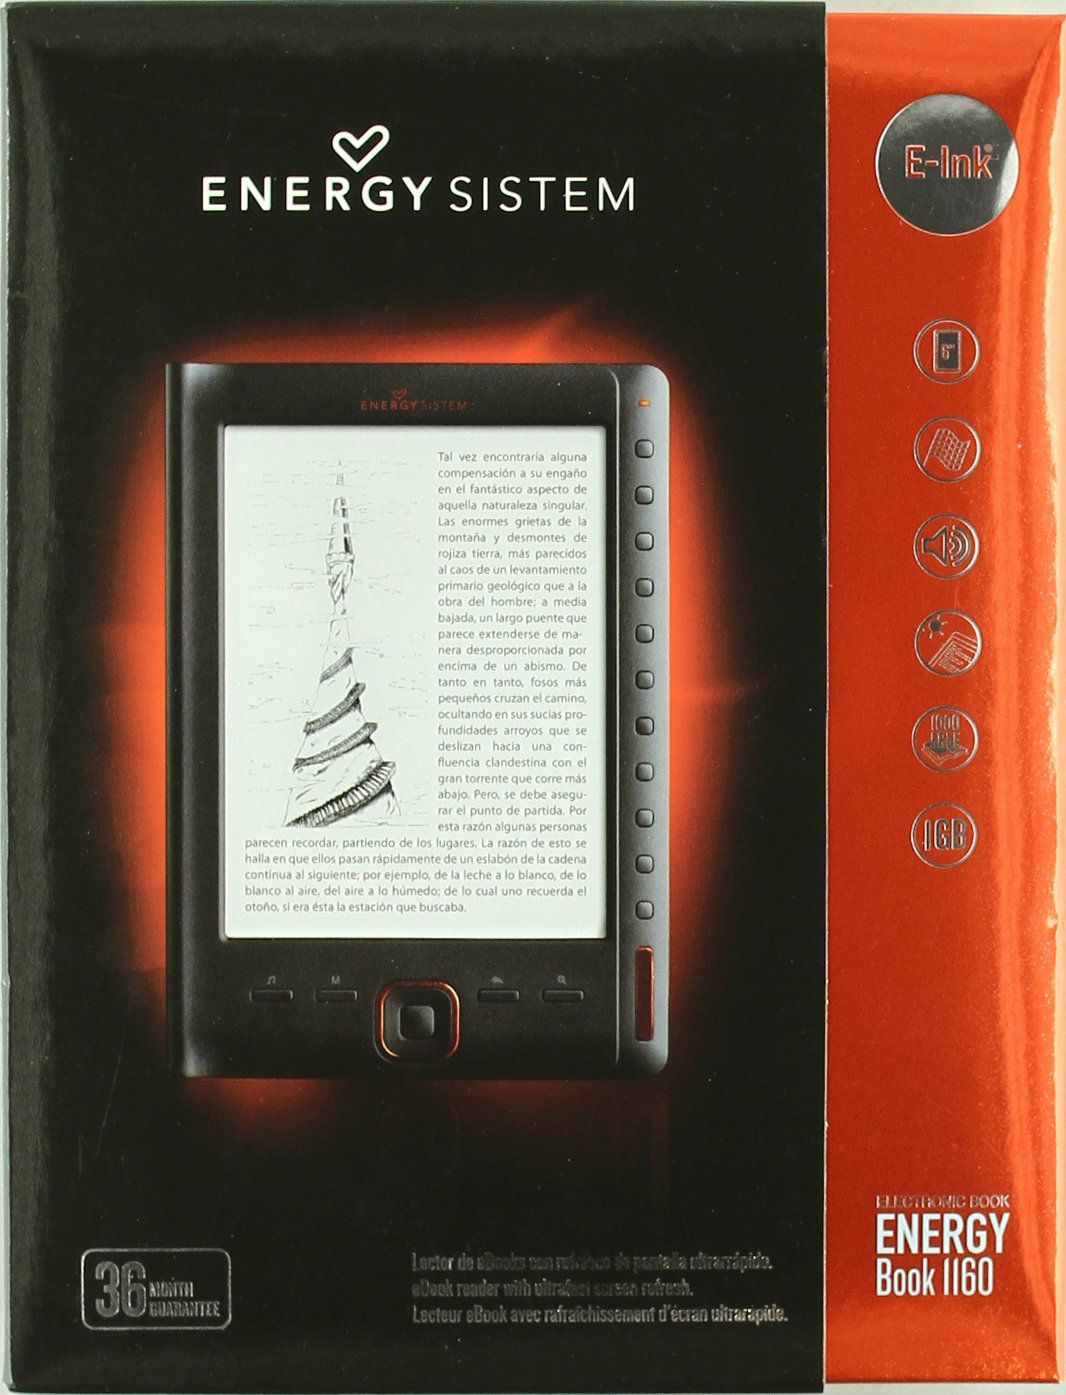 Energy Book 1160 - Lector Ebook - 1 Gb: Amazon.es: Electrónica